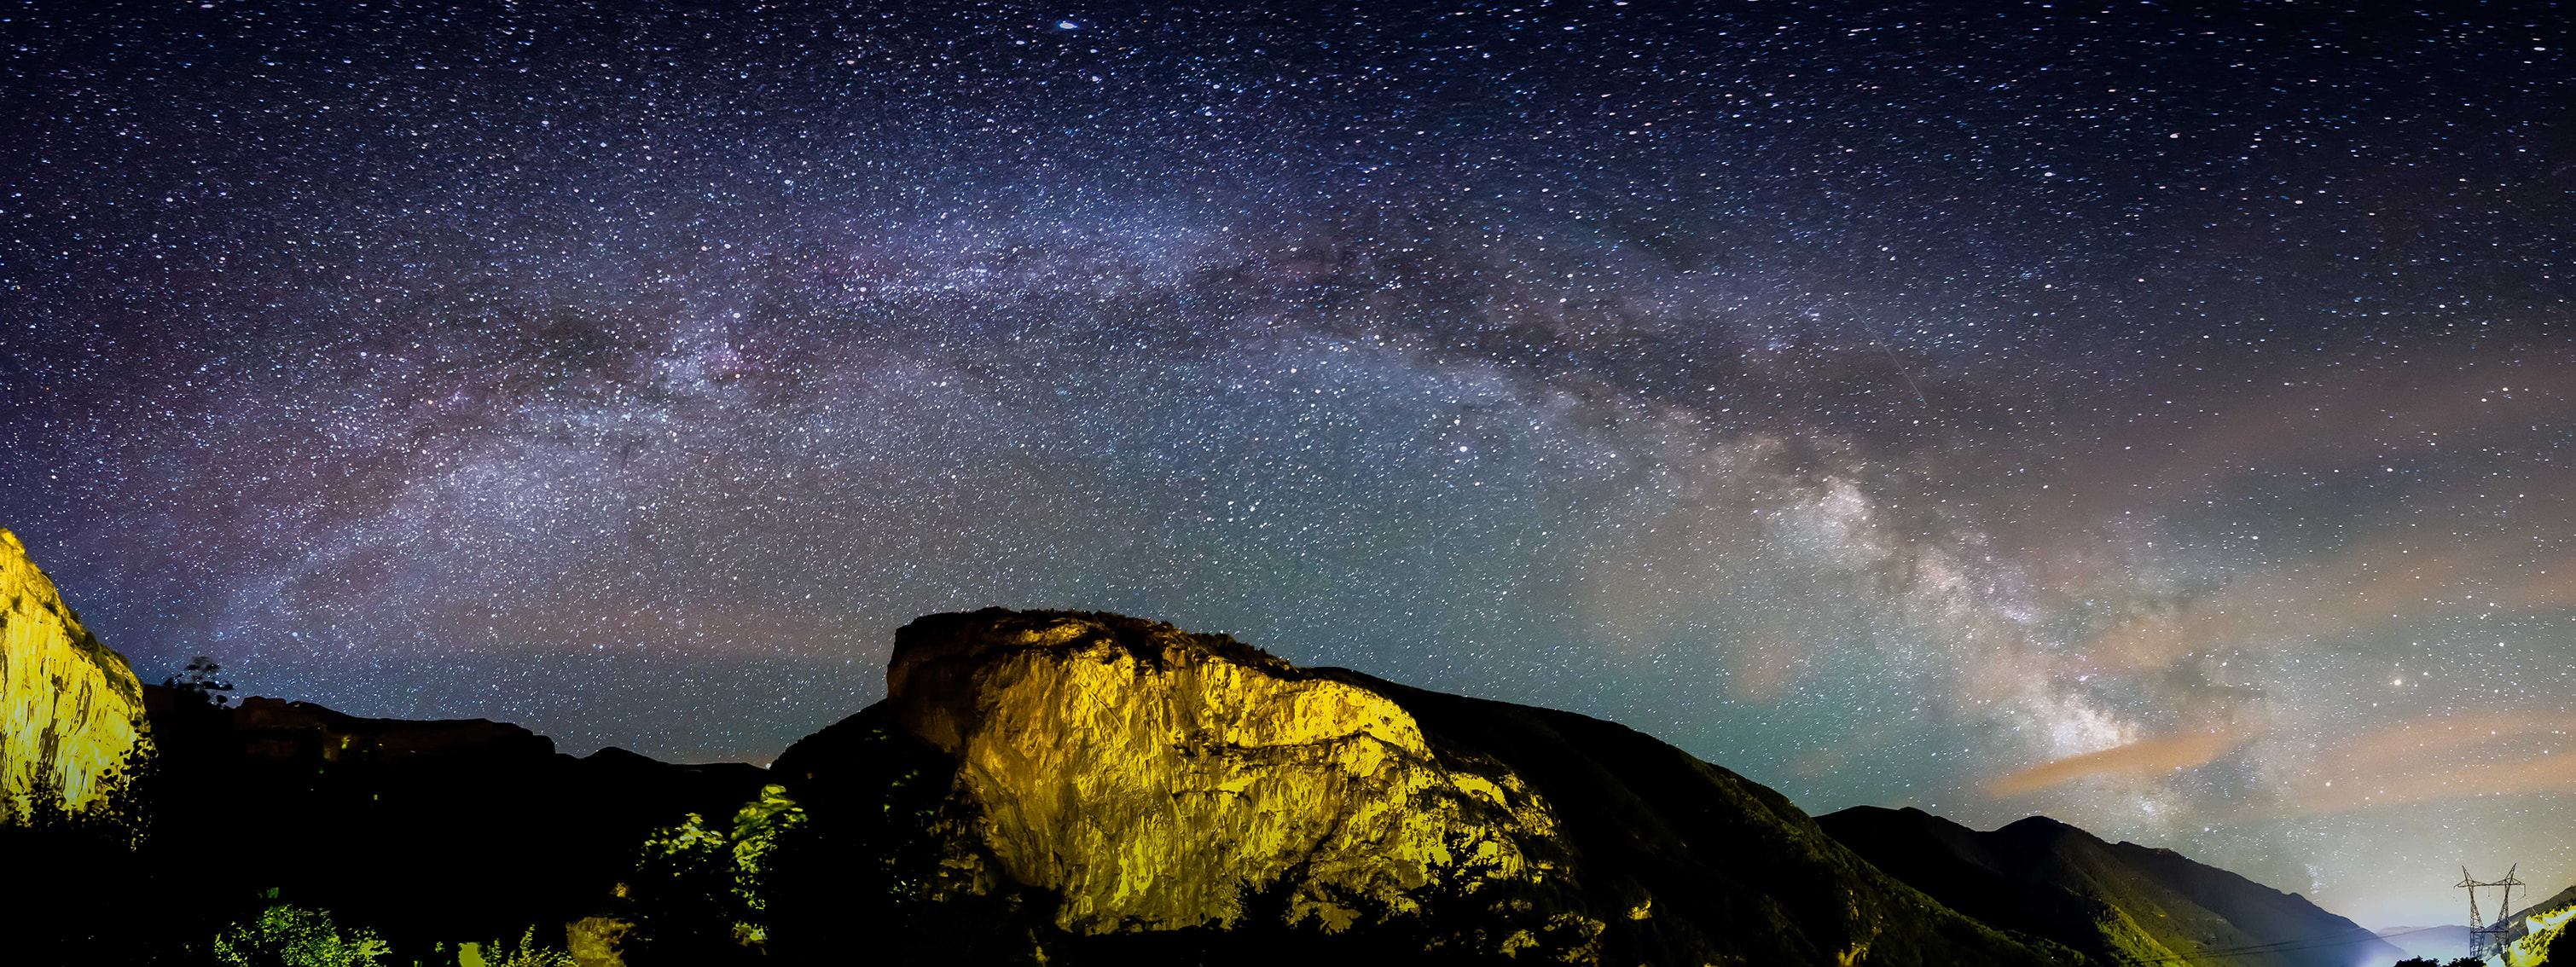 Photos of stars or the Milky Way